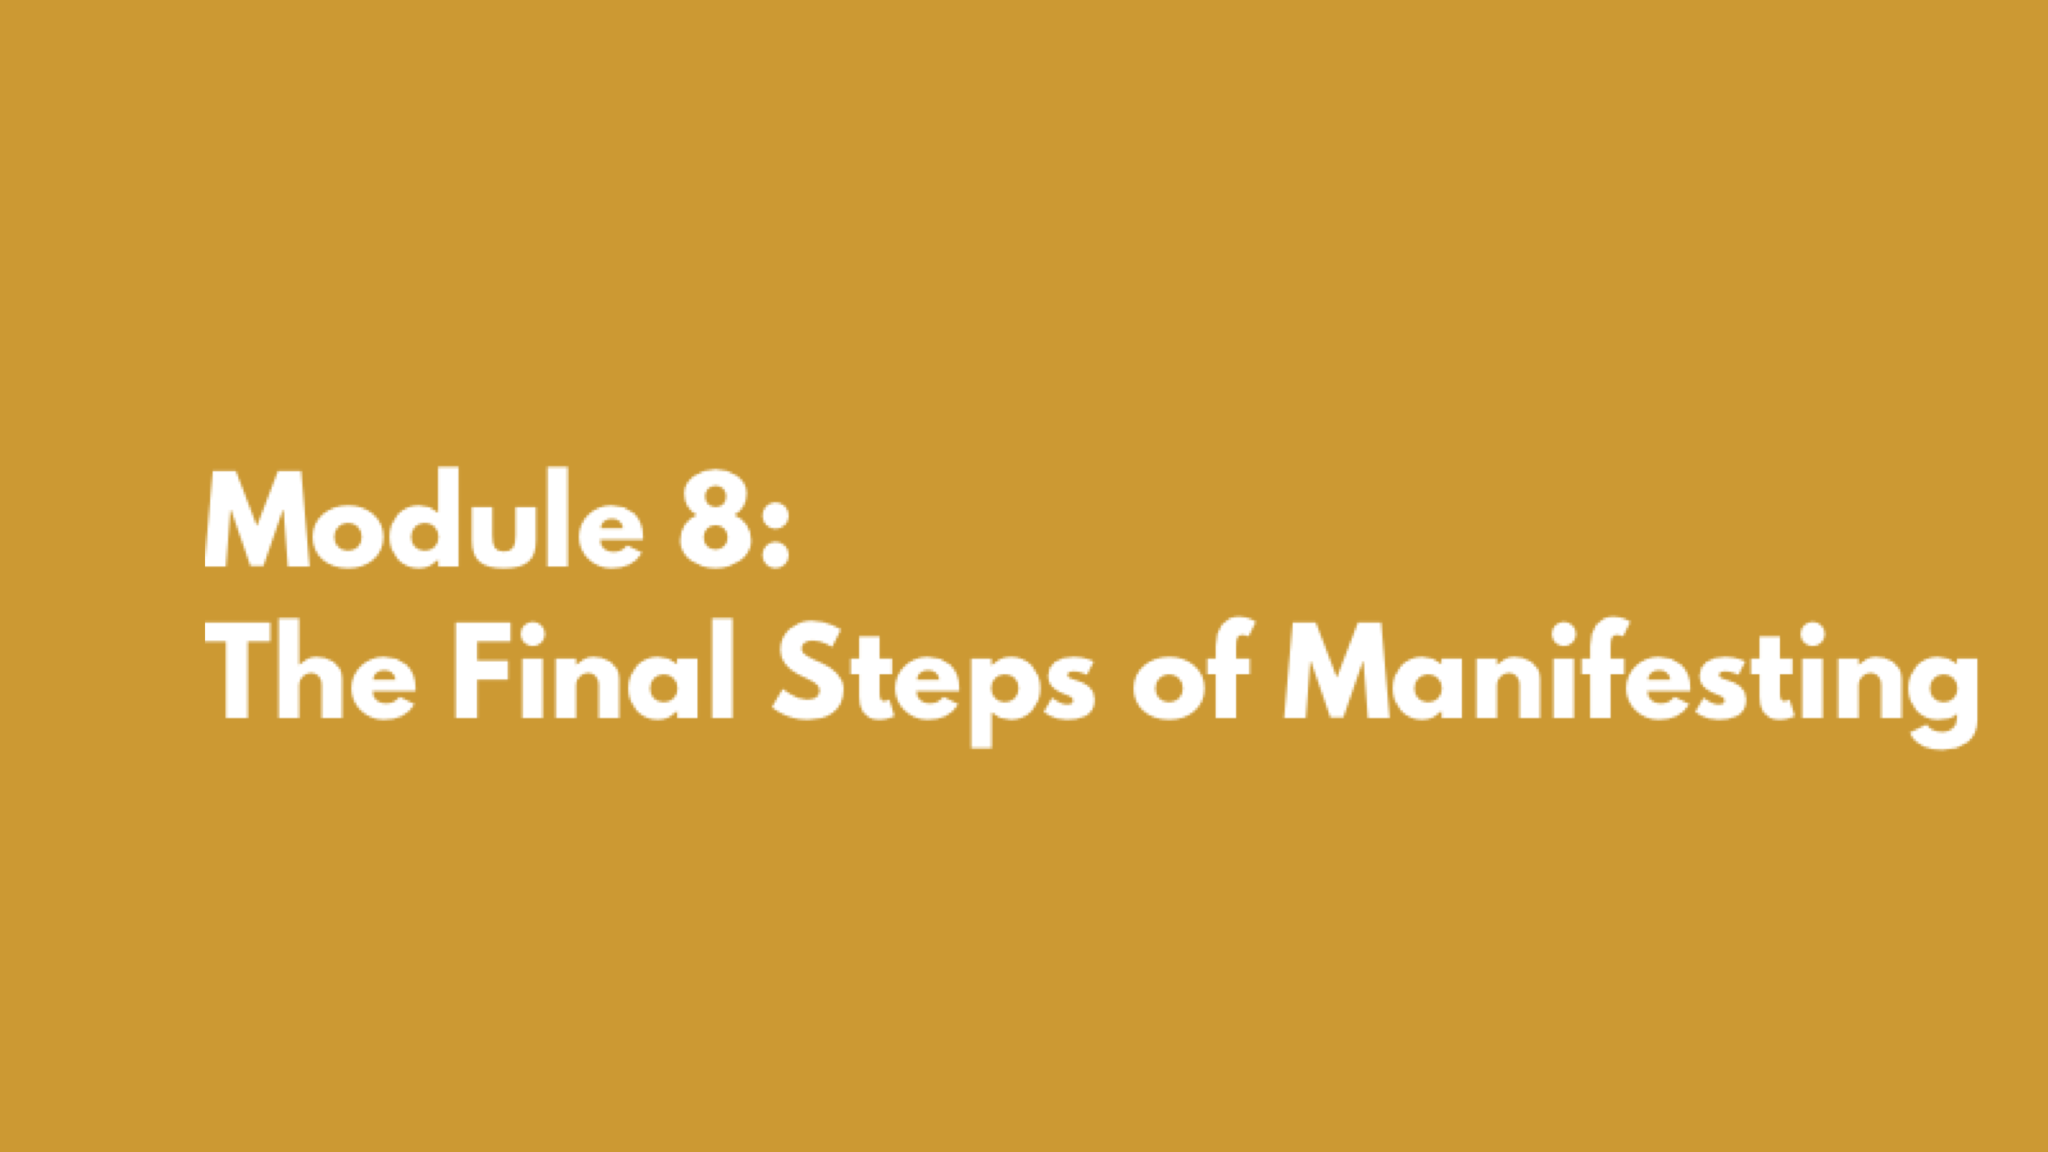 Module 8: The Final Steps of Manifesting